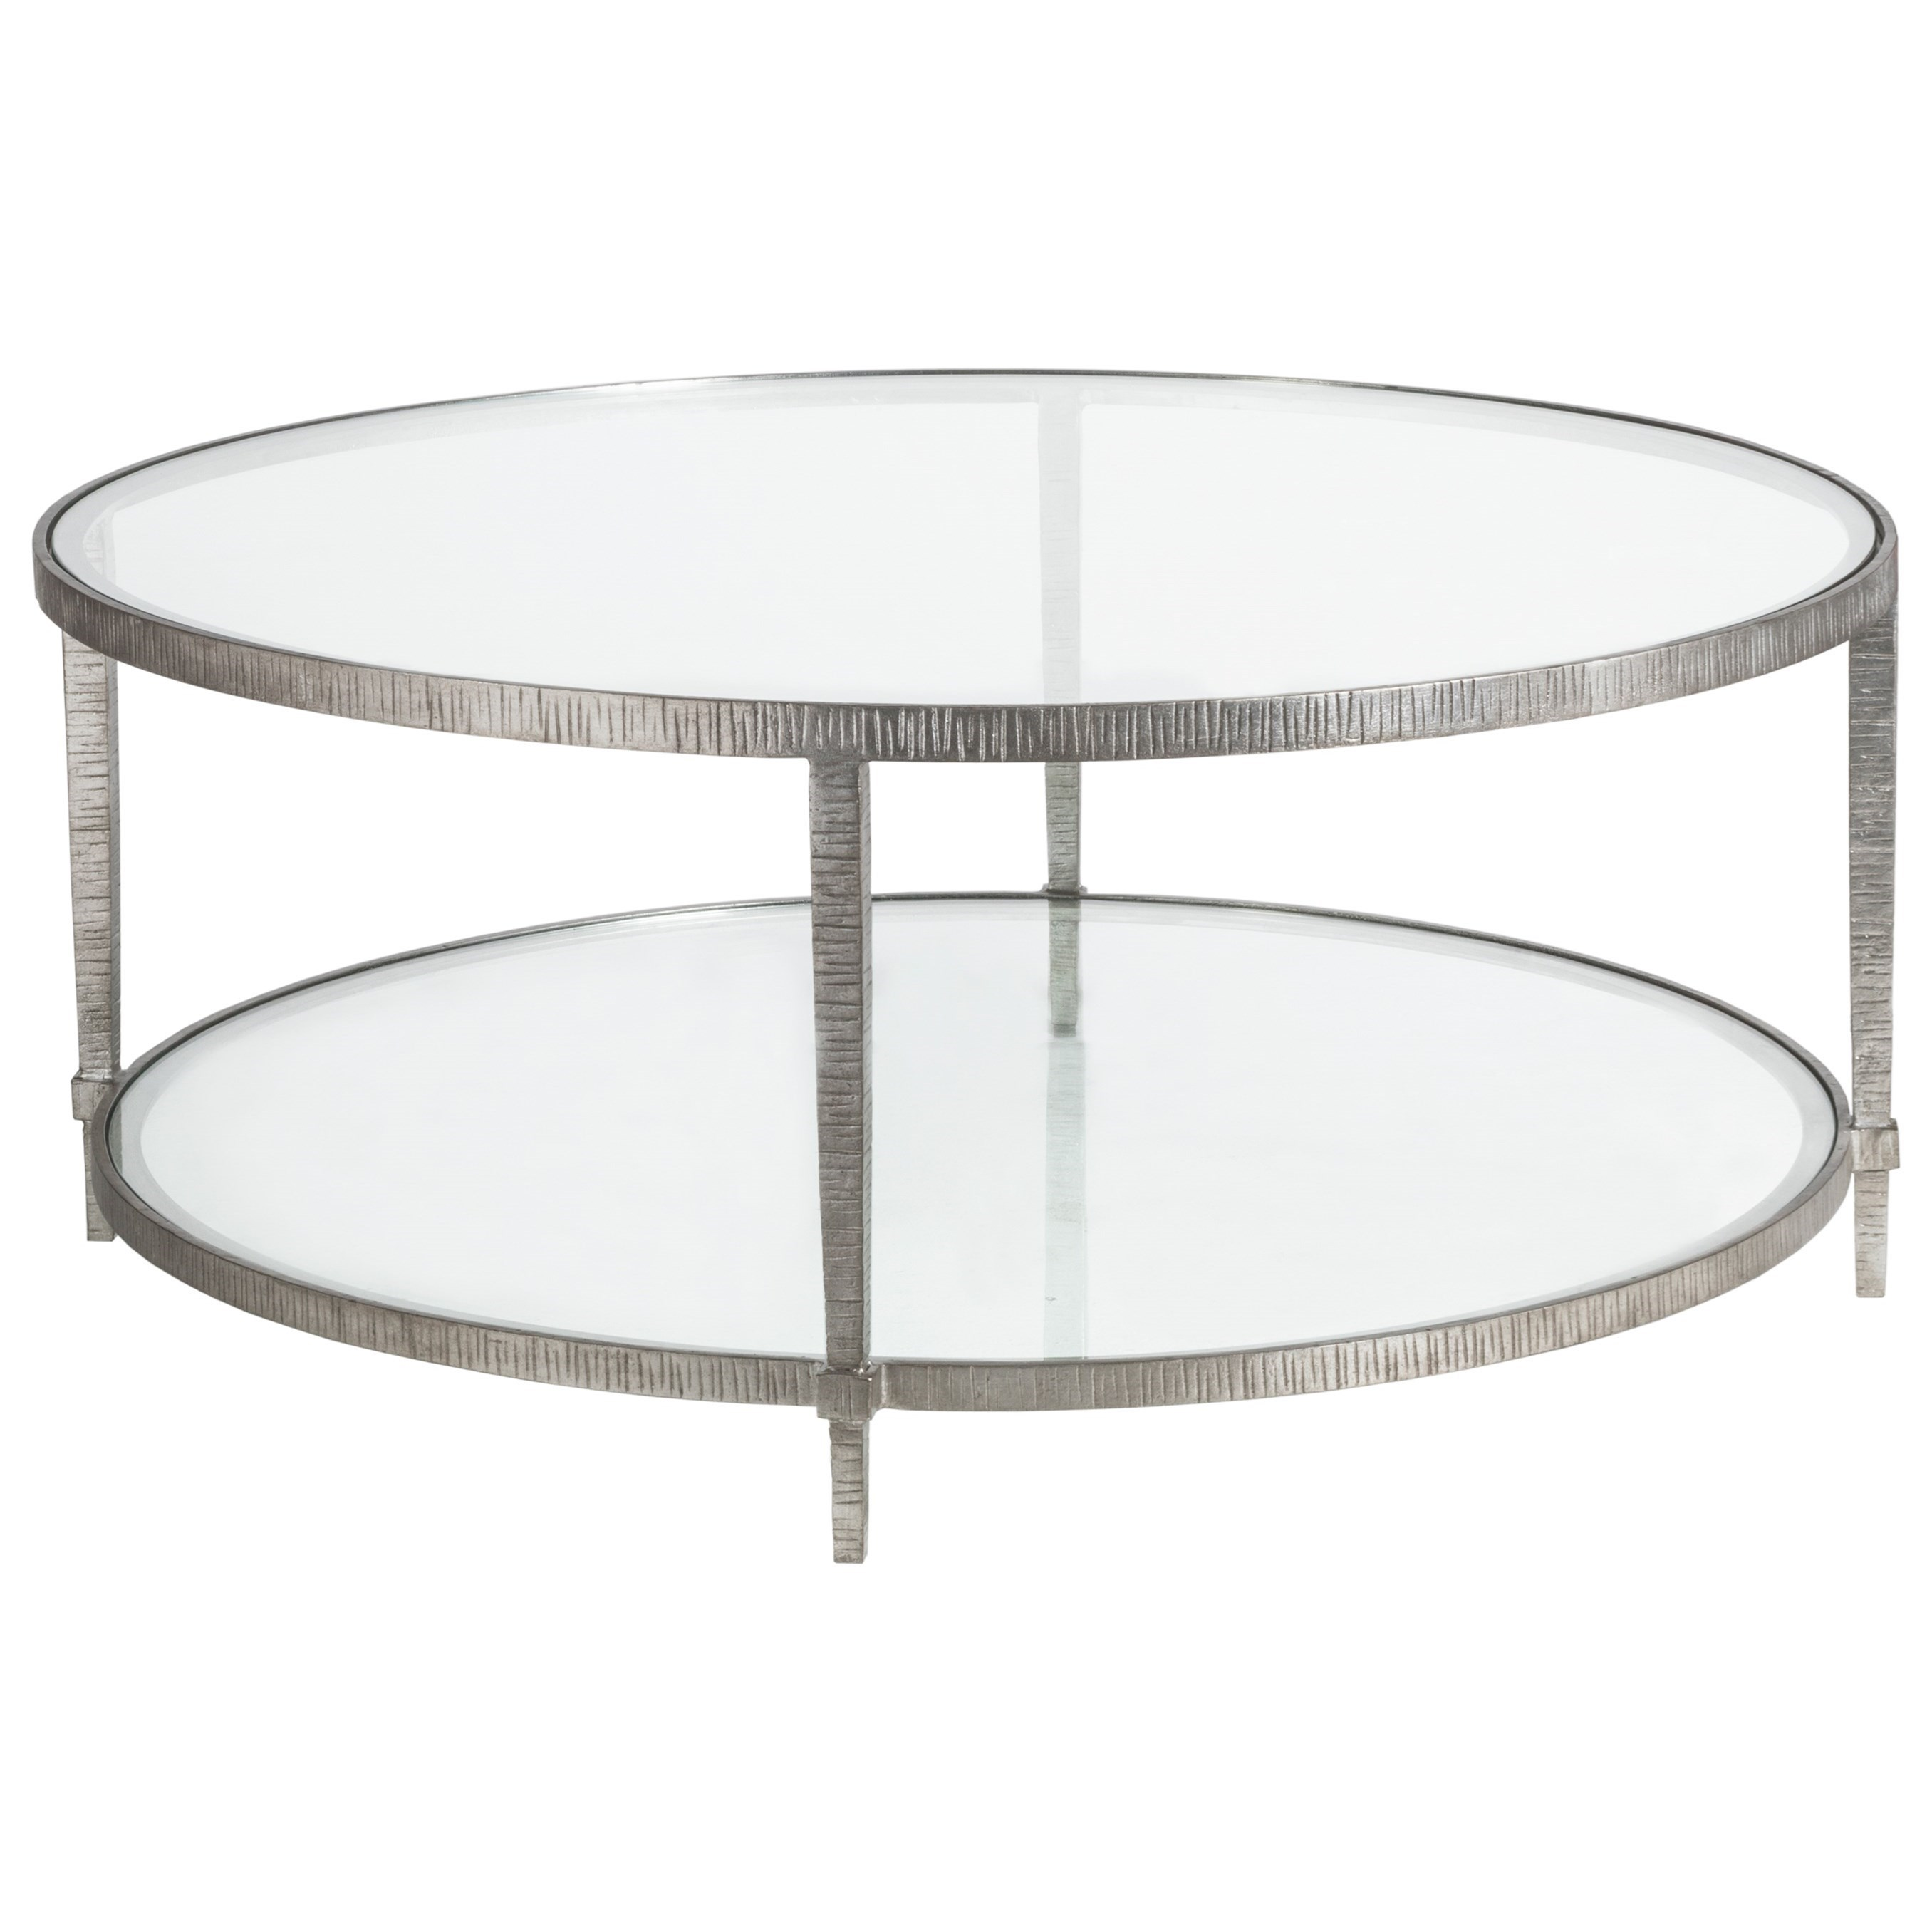 Metal Designs Claret Round Cocktail Table by Artistica at Baer's Furniture